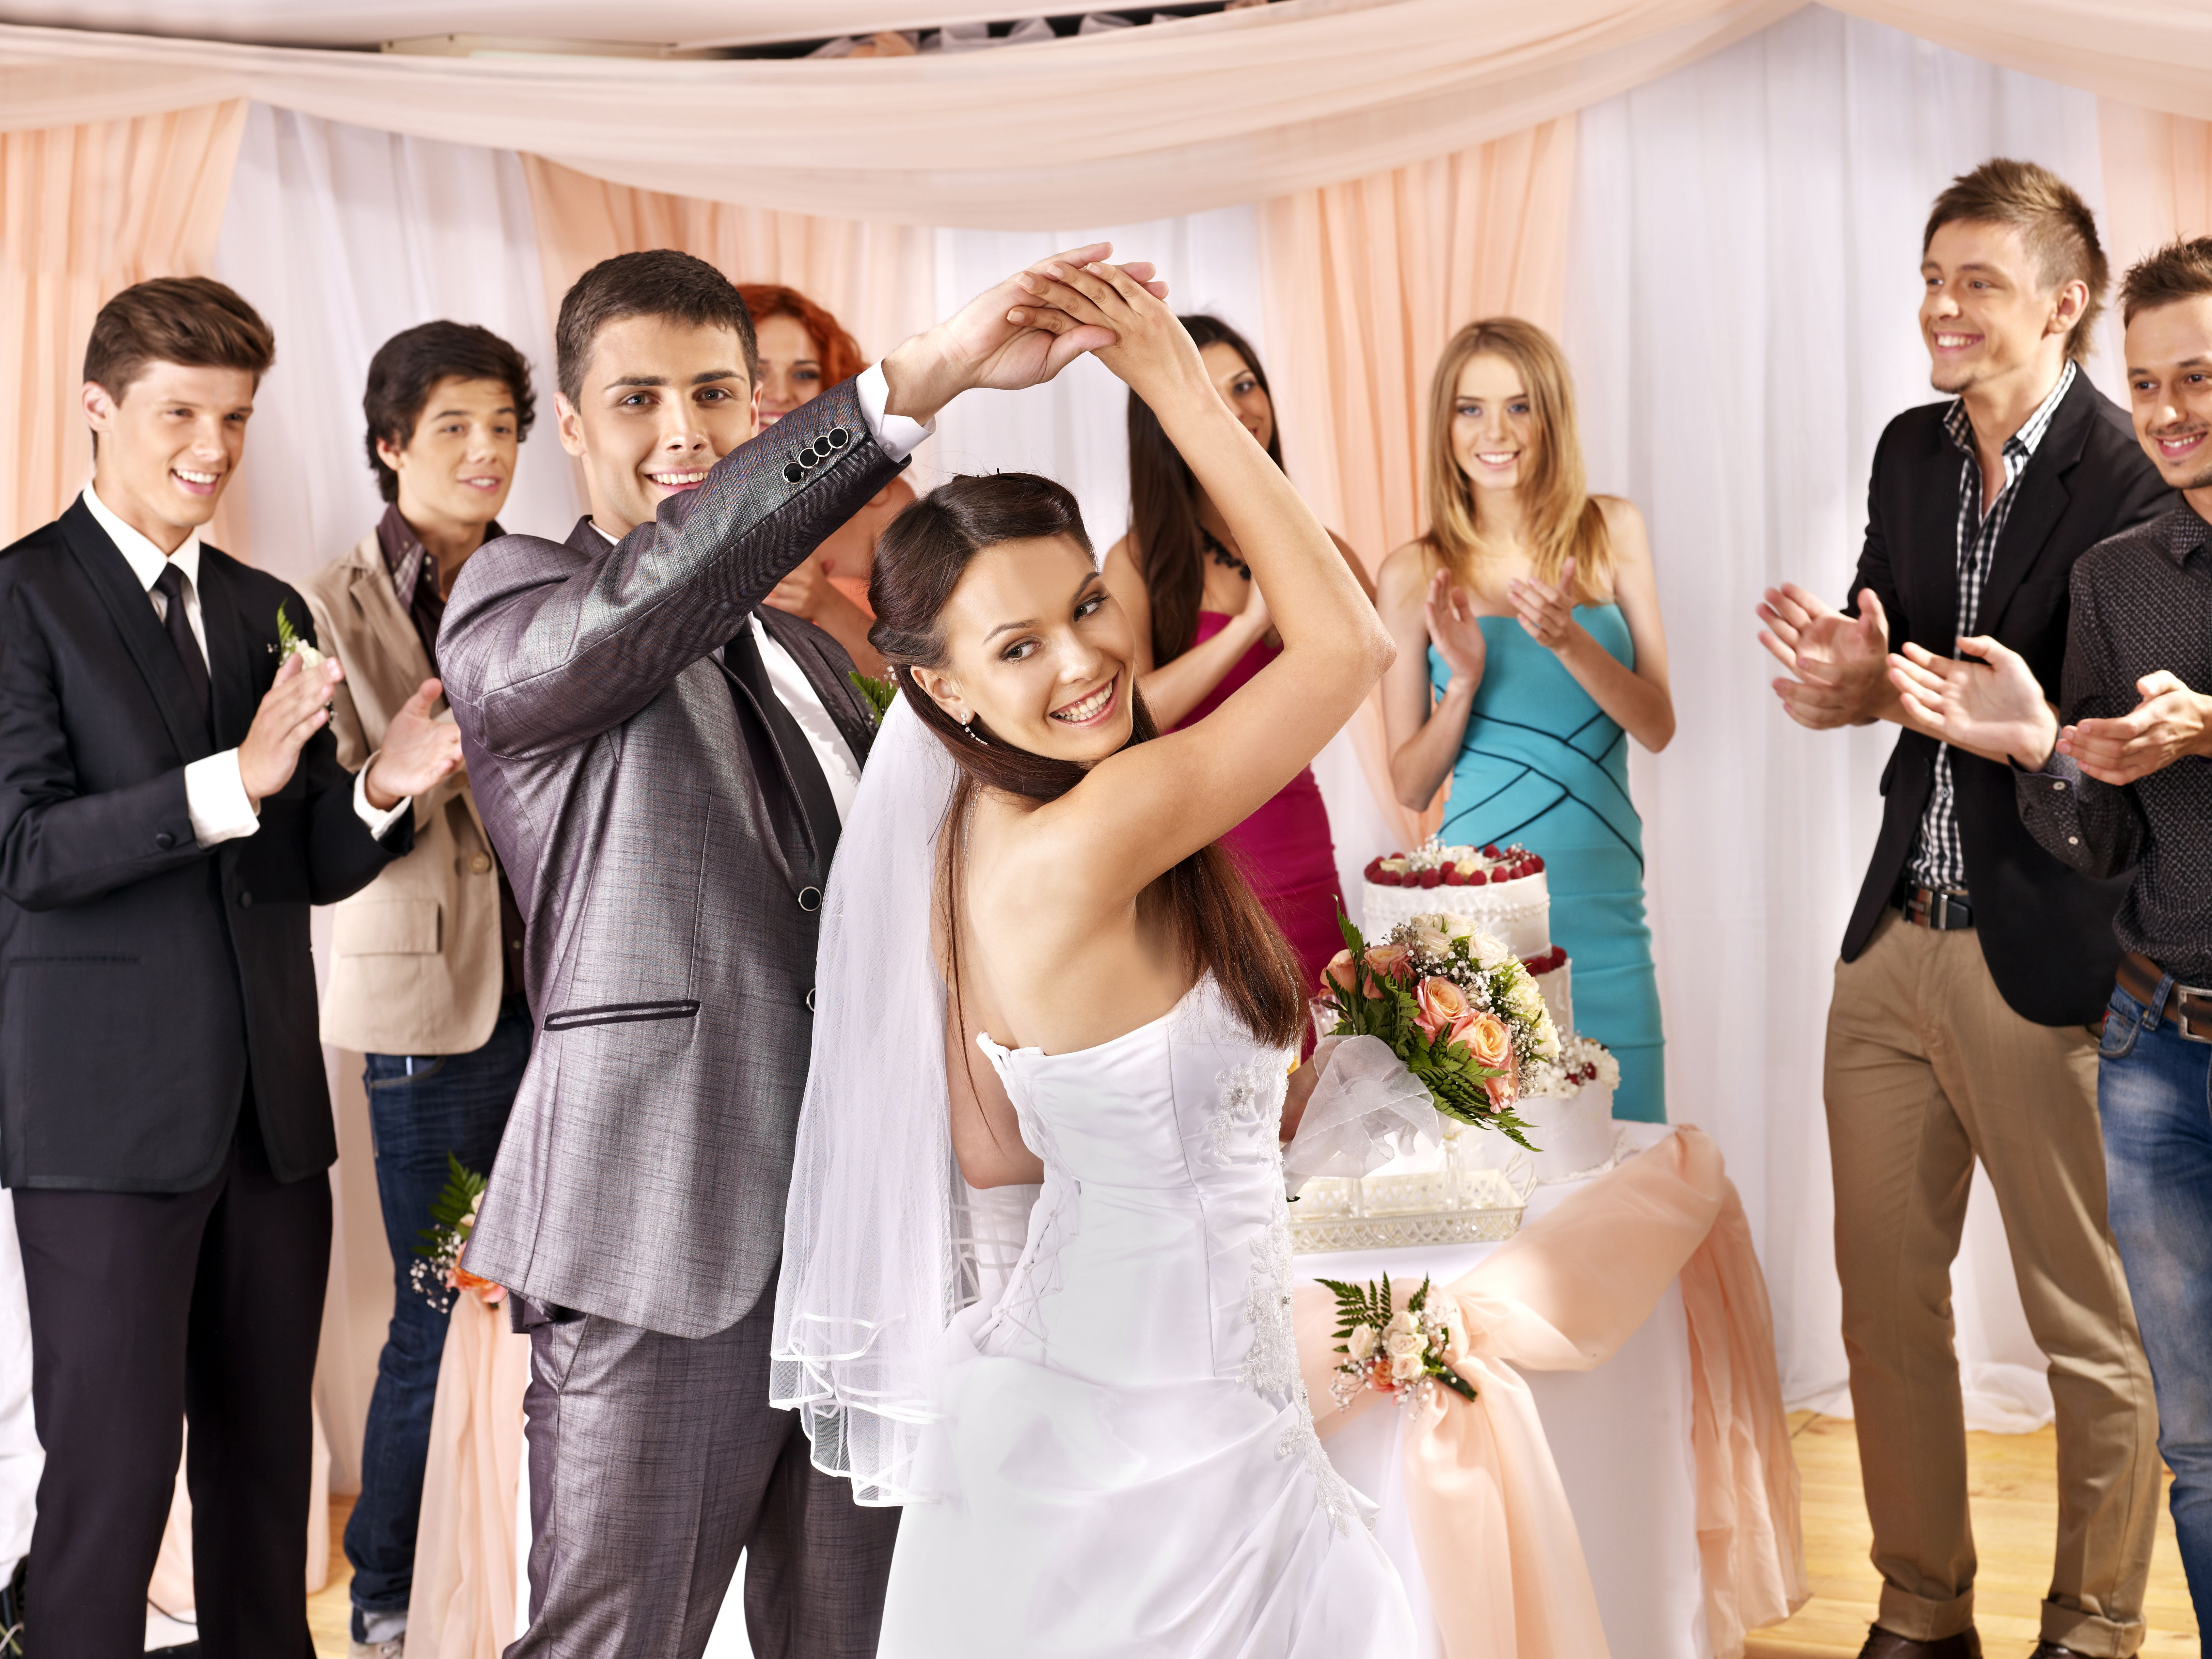 Are you ready for the next wedding reception? Let me help